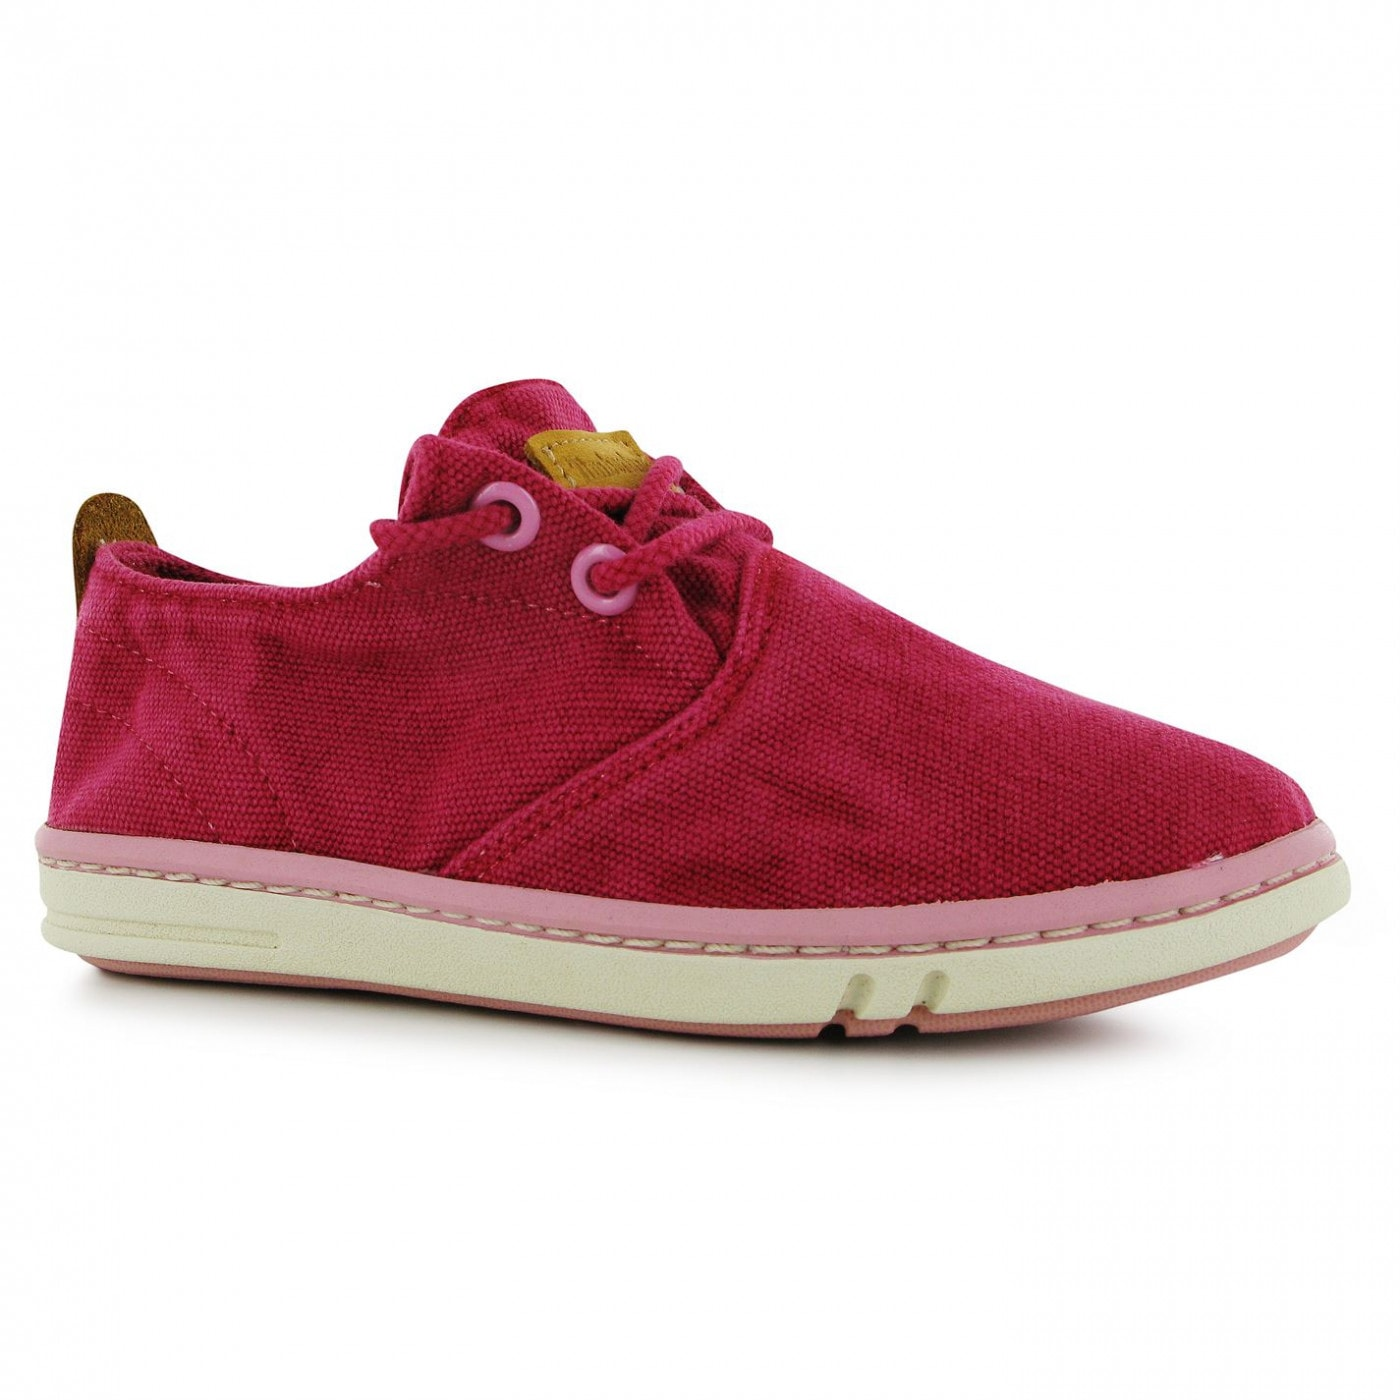 Timberland Hook Oxford Trainers Infant Boys